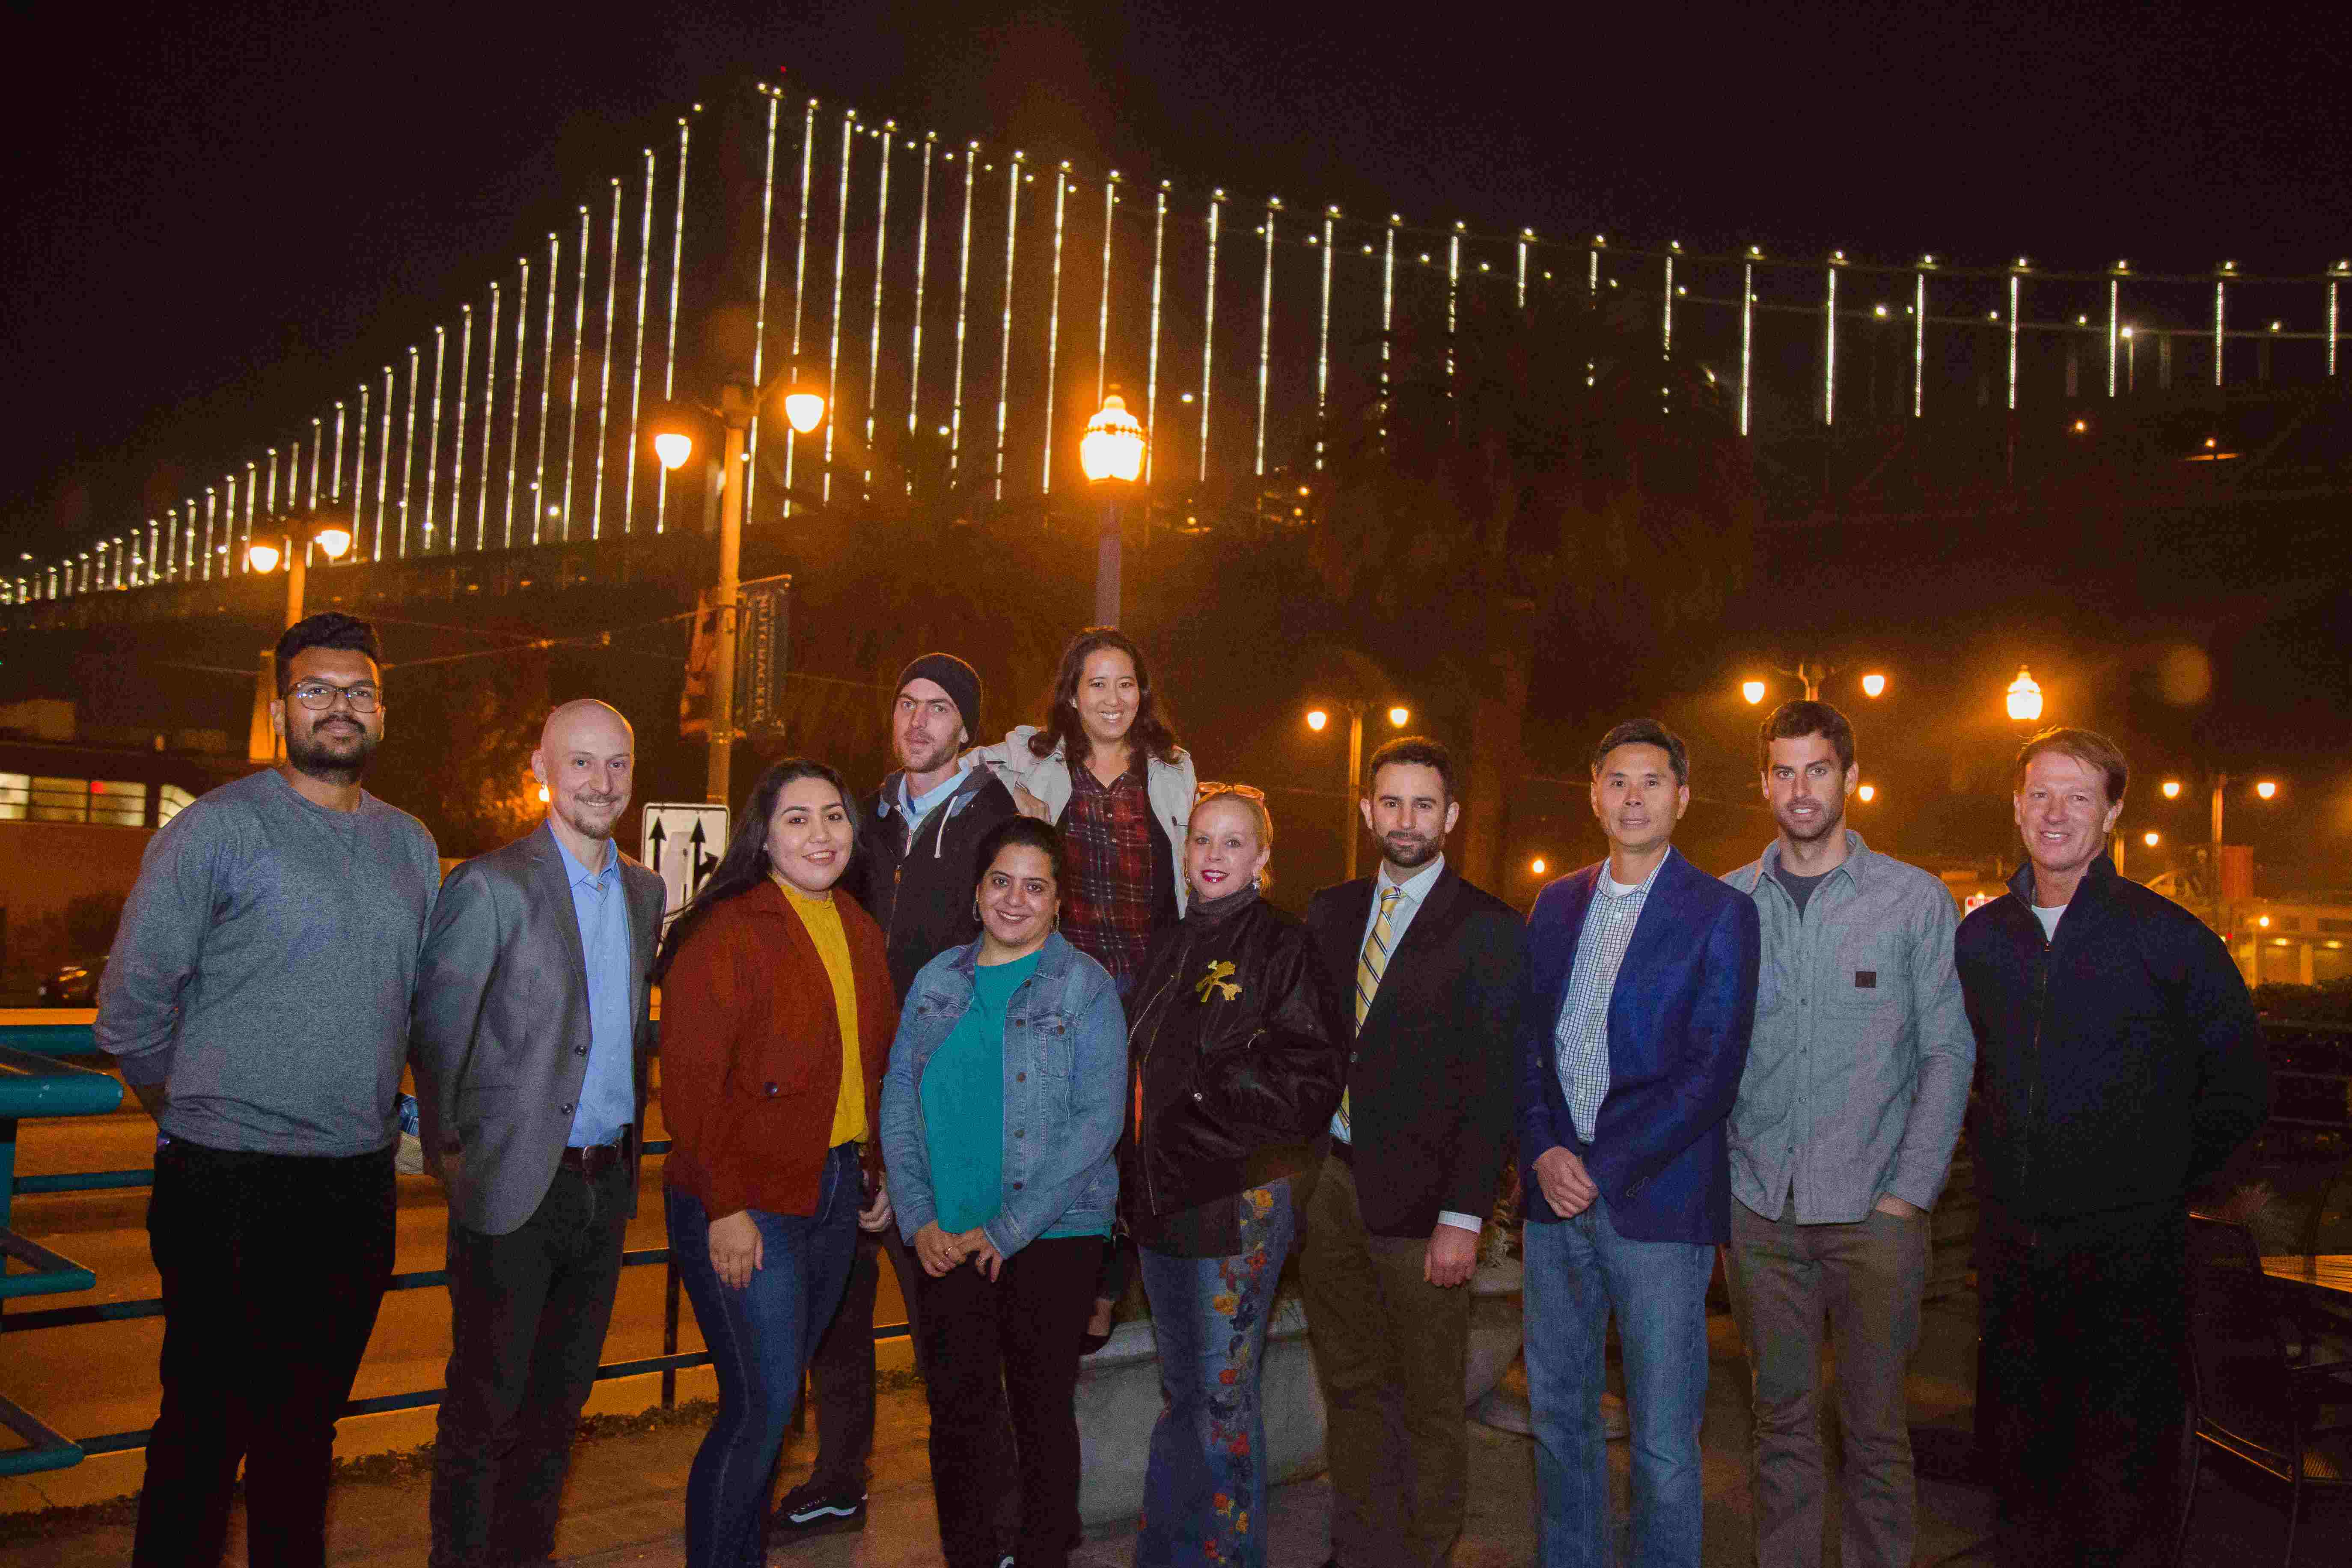 Group photo of Urbanests team in front of Bay Bridge in San Francisco.